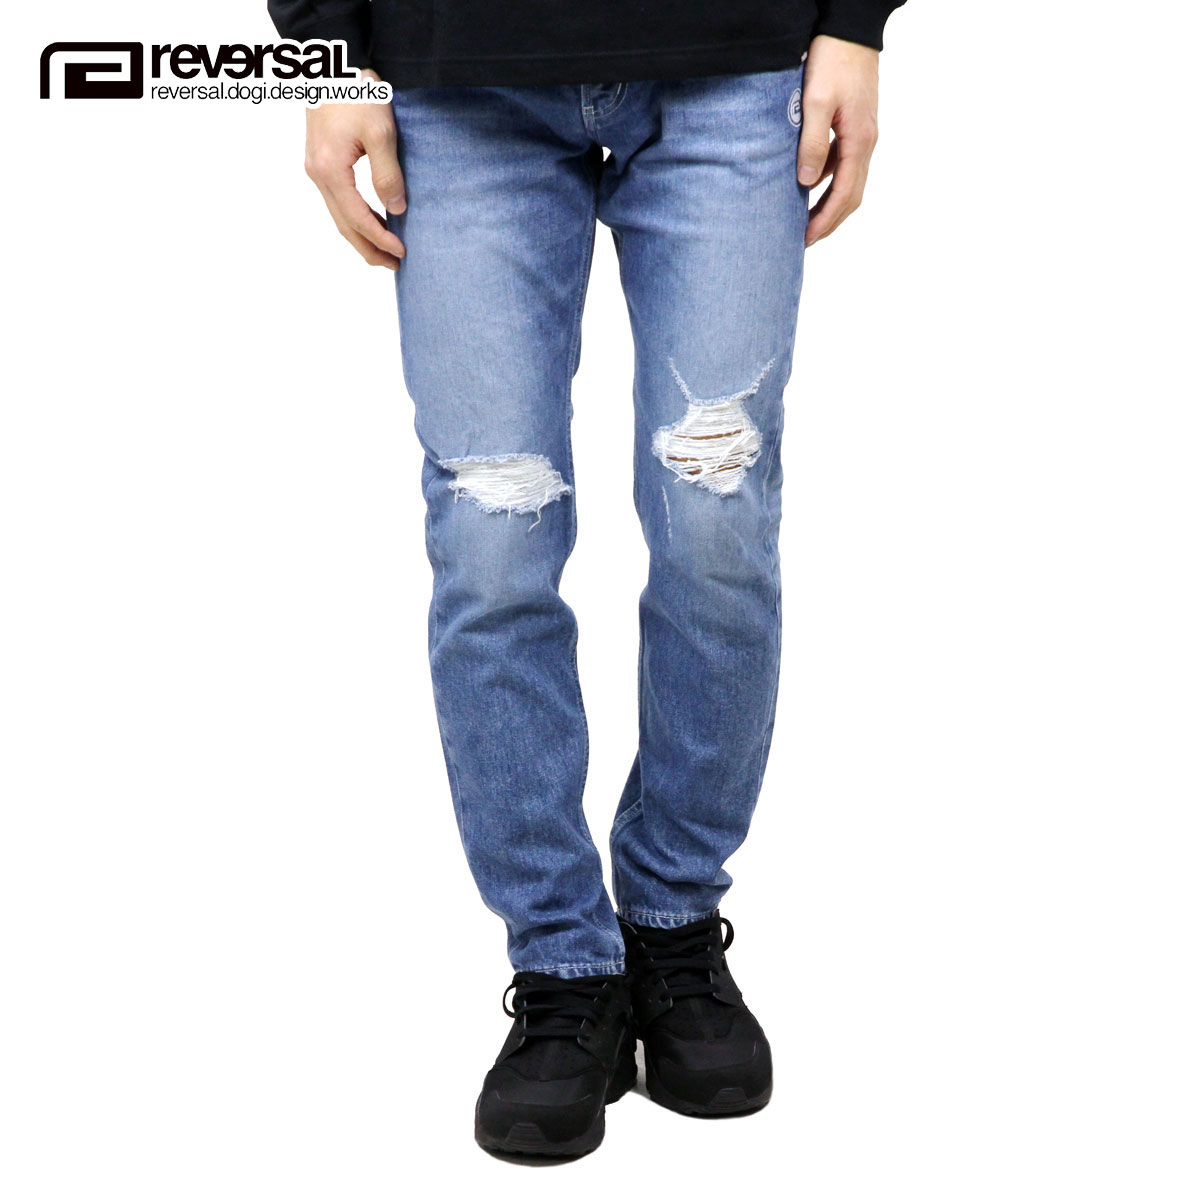 リバーサル REVERSAL 正規販売店 メンズ ジーンズ GI STRETCH DAMAGE DENIM rv17aw007 LIGHT INDIGO BLUE